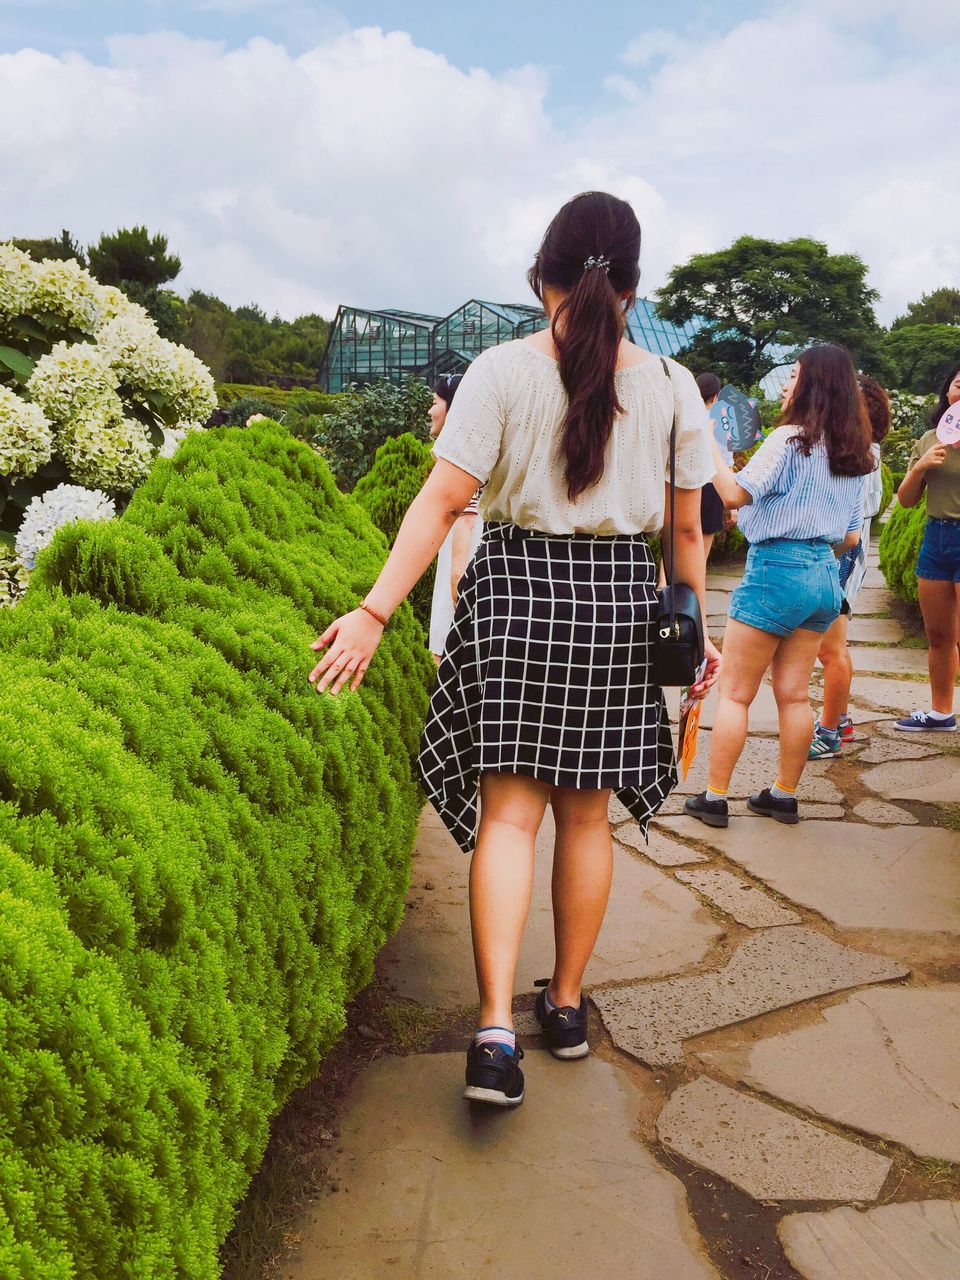 real people, full length, rear view, leisure activity, casual clothing, day, young women, walking, togetherness, outdoors, lifestyles, young adult, two people, standing, bonding, friendship, sky, women, tree